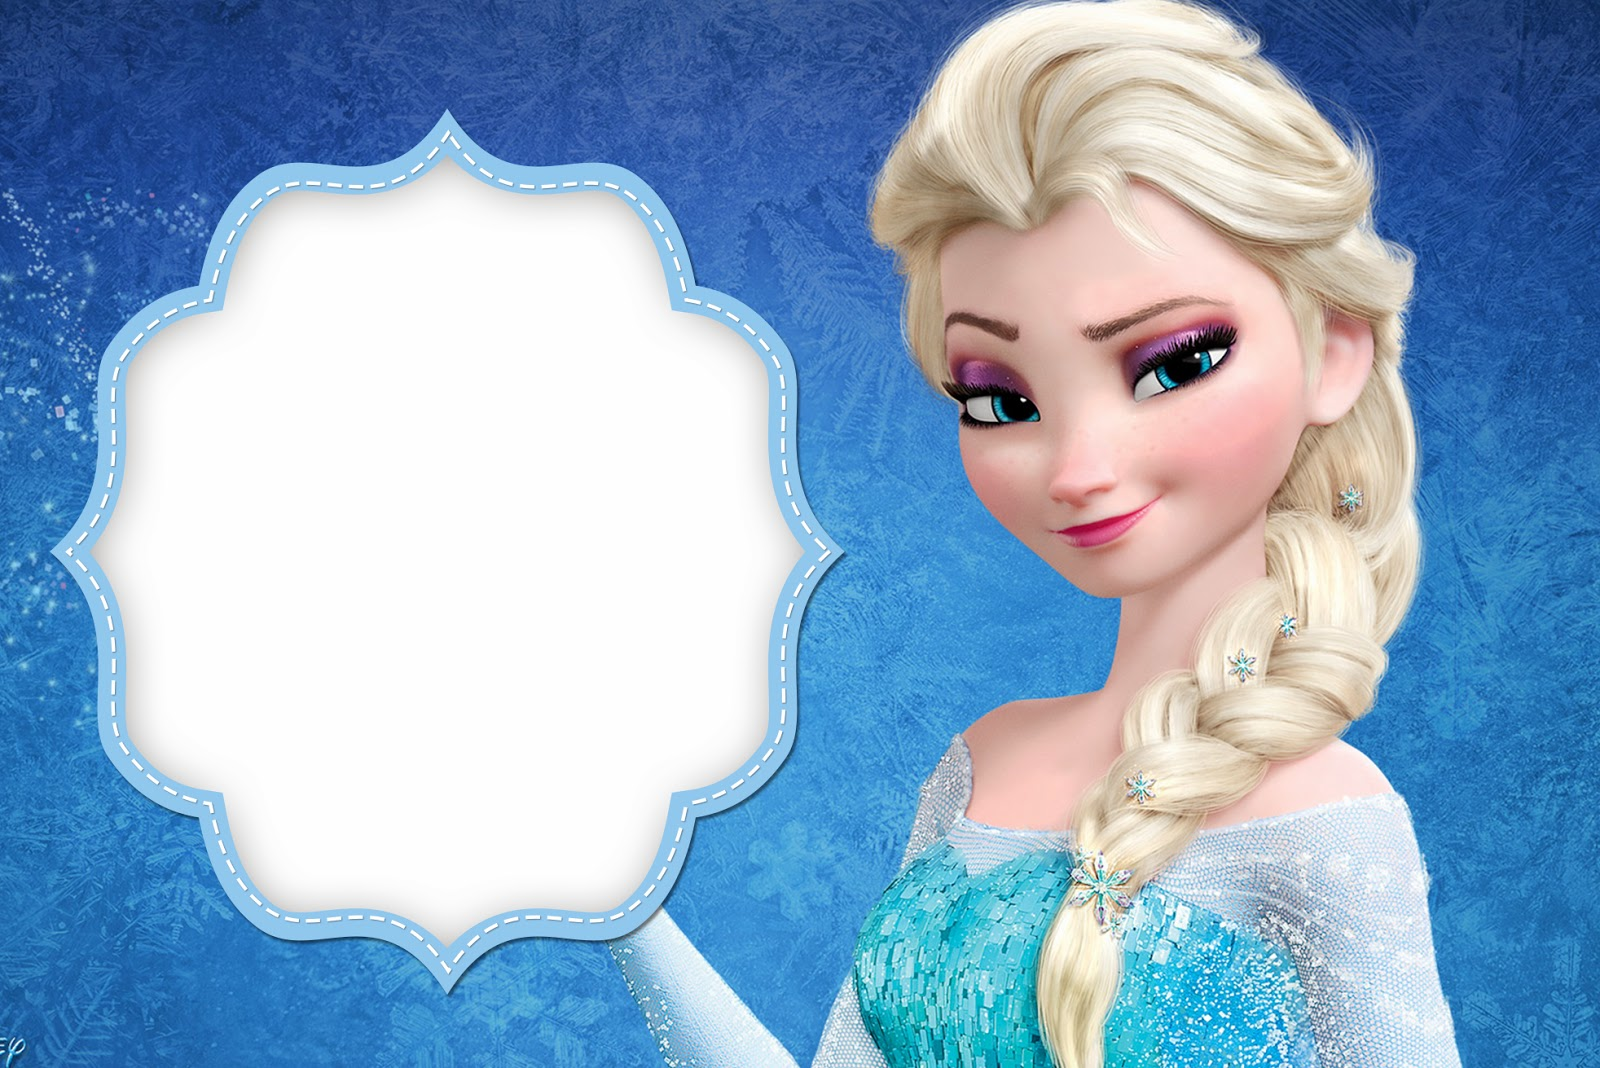 frozen: free printable cards or party invitations. | oh my fiesta